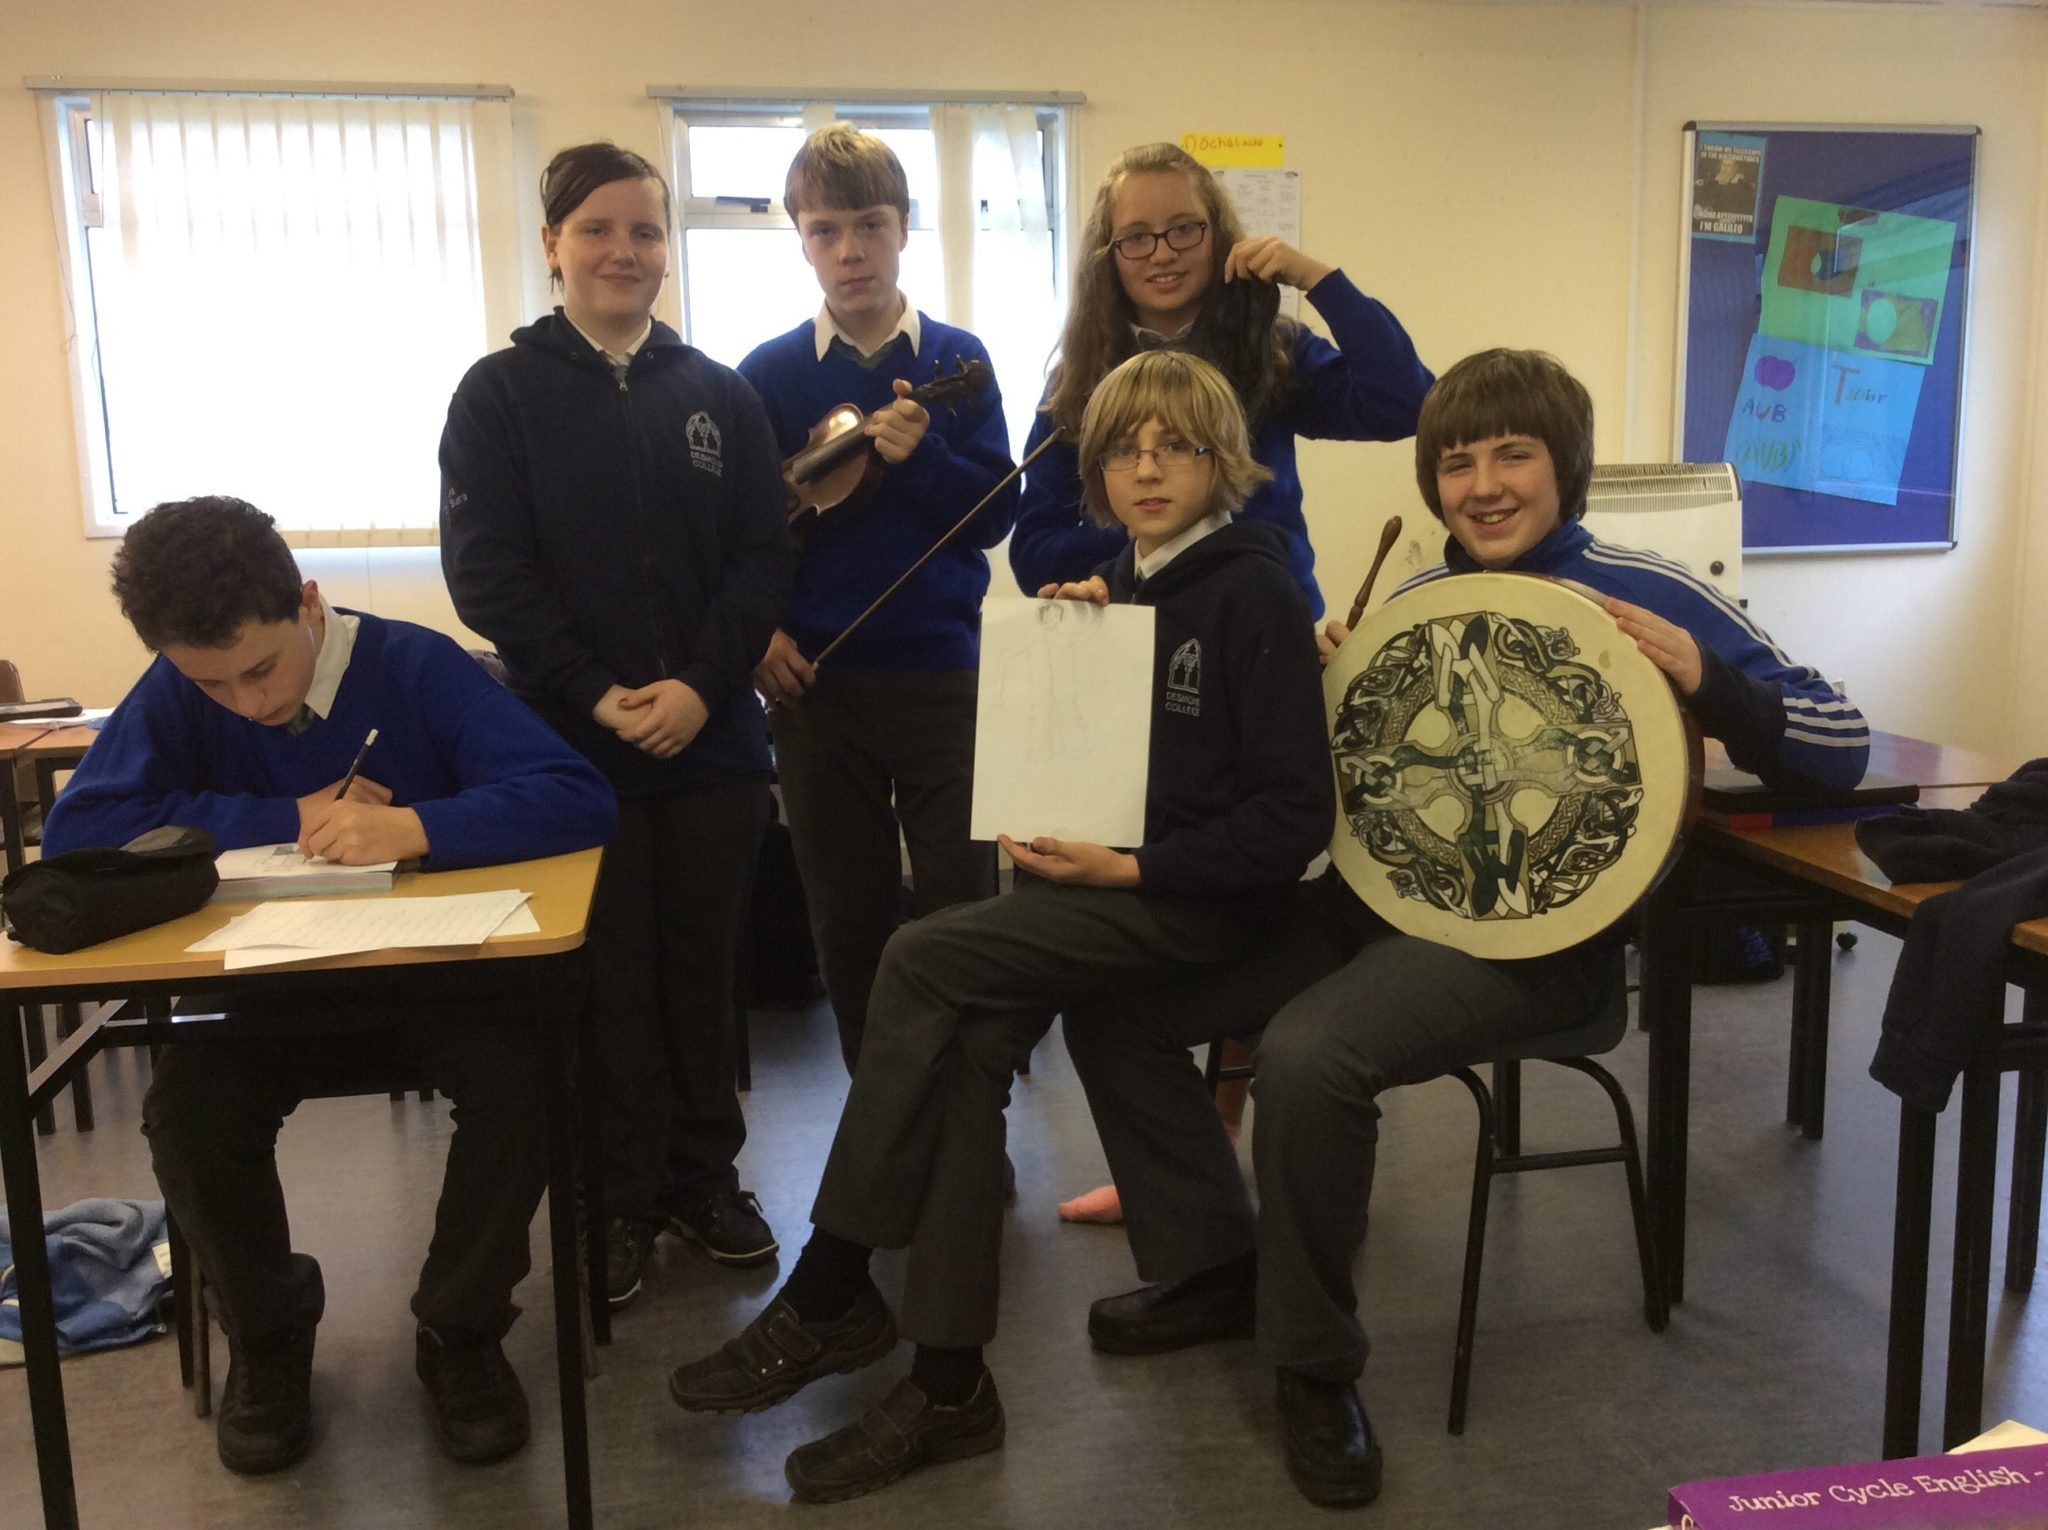 2015 November 5th:  Some of the Gaelcholáiste students at their creative day.